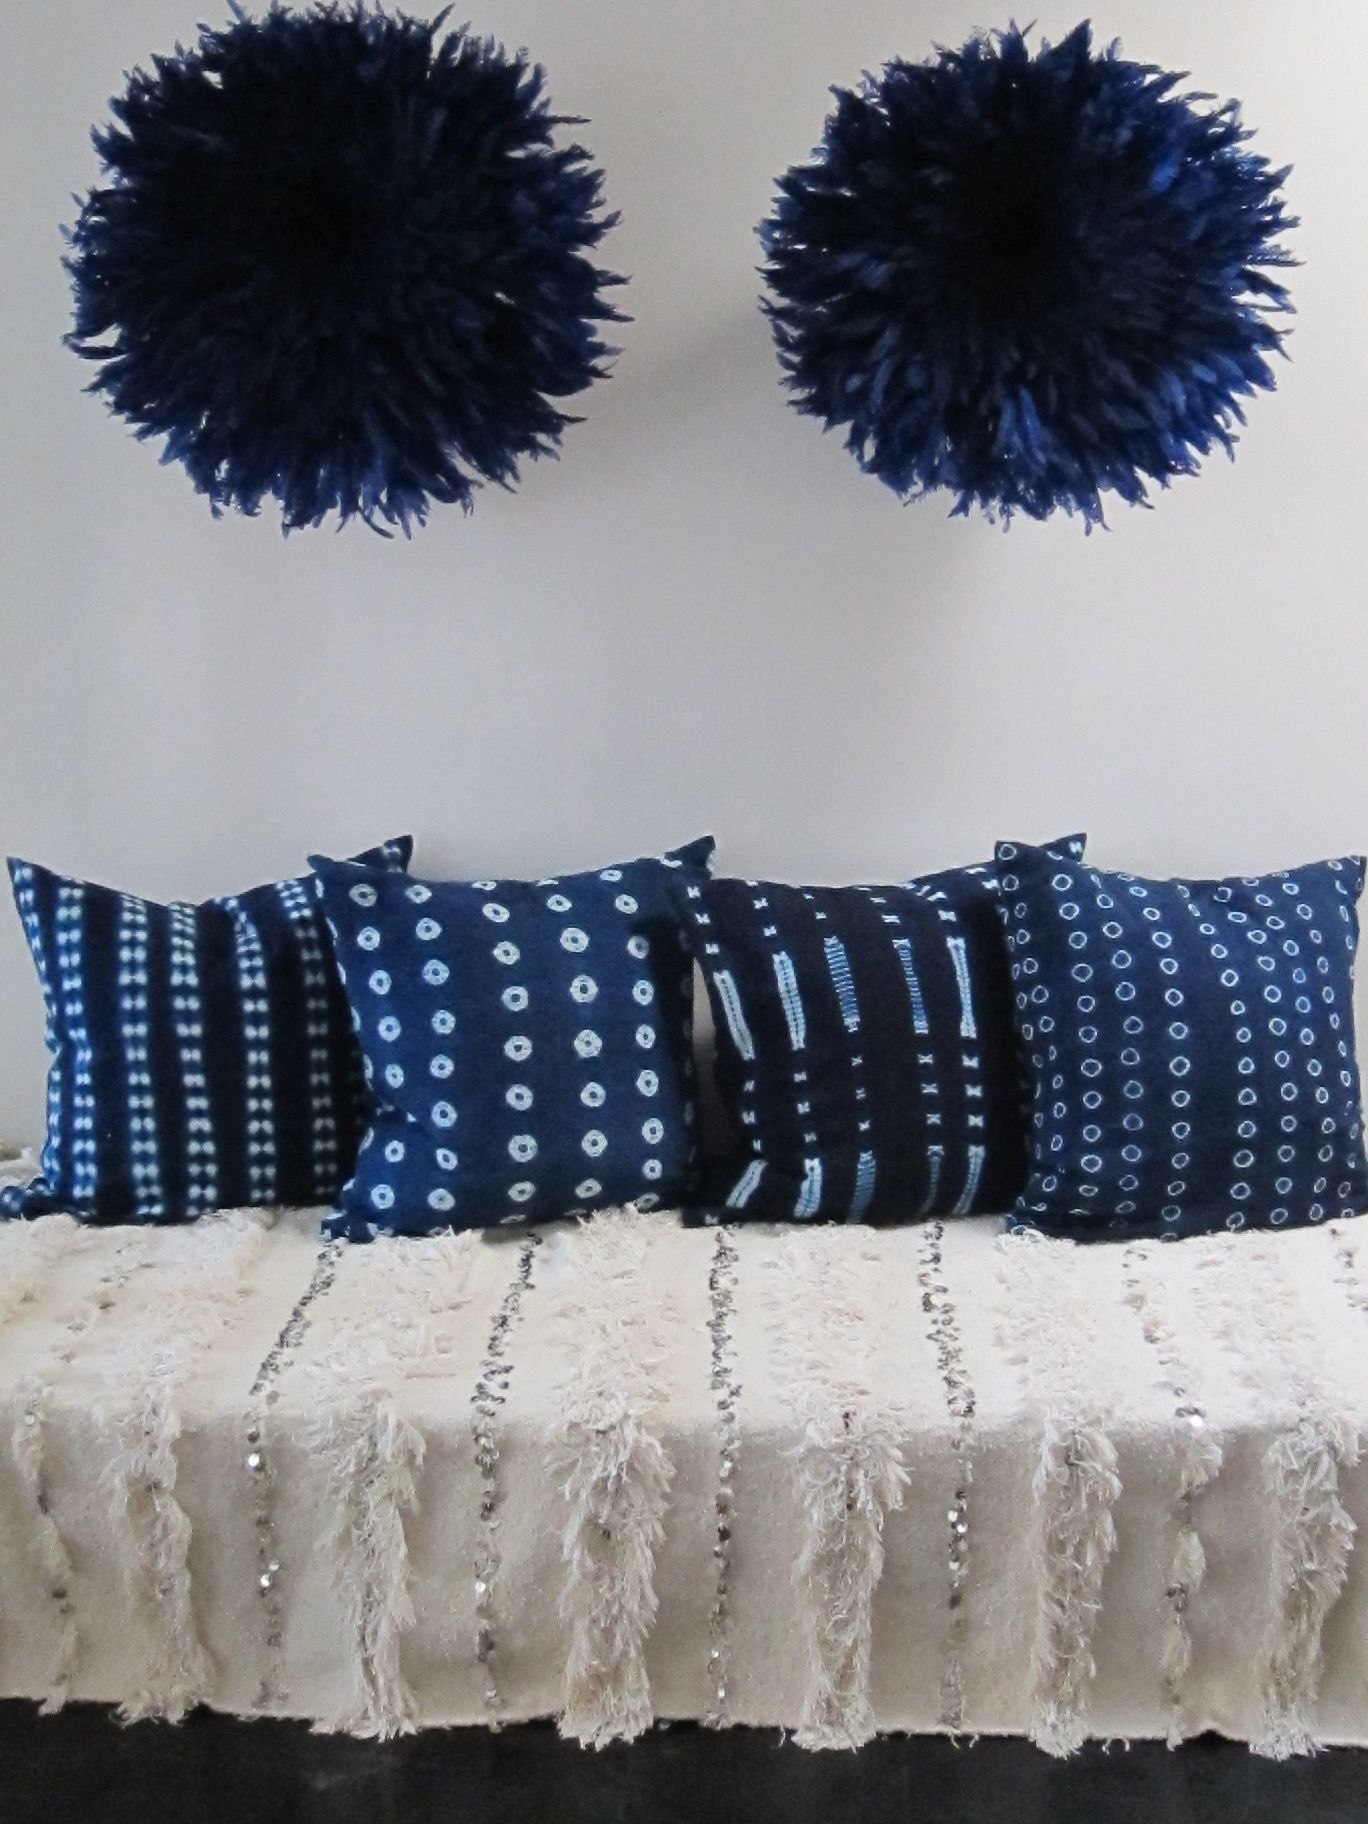 Hand-woven Mossi blanket from Burkino Faso, Indigo cushions and blue Juju hats from Cameroon